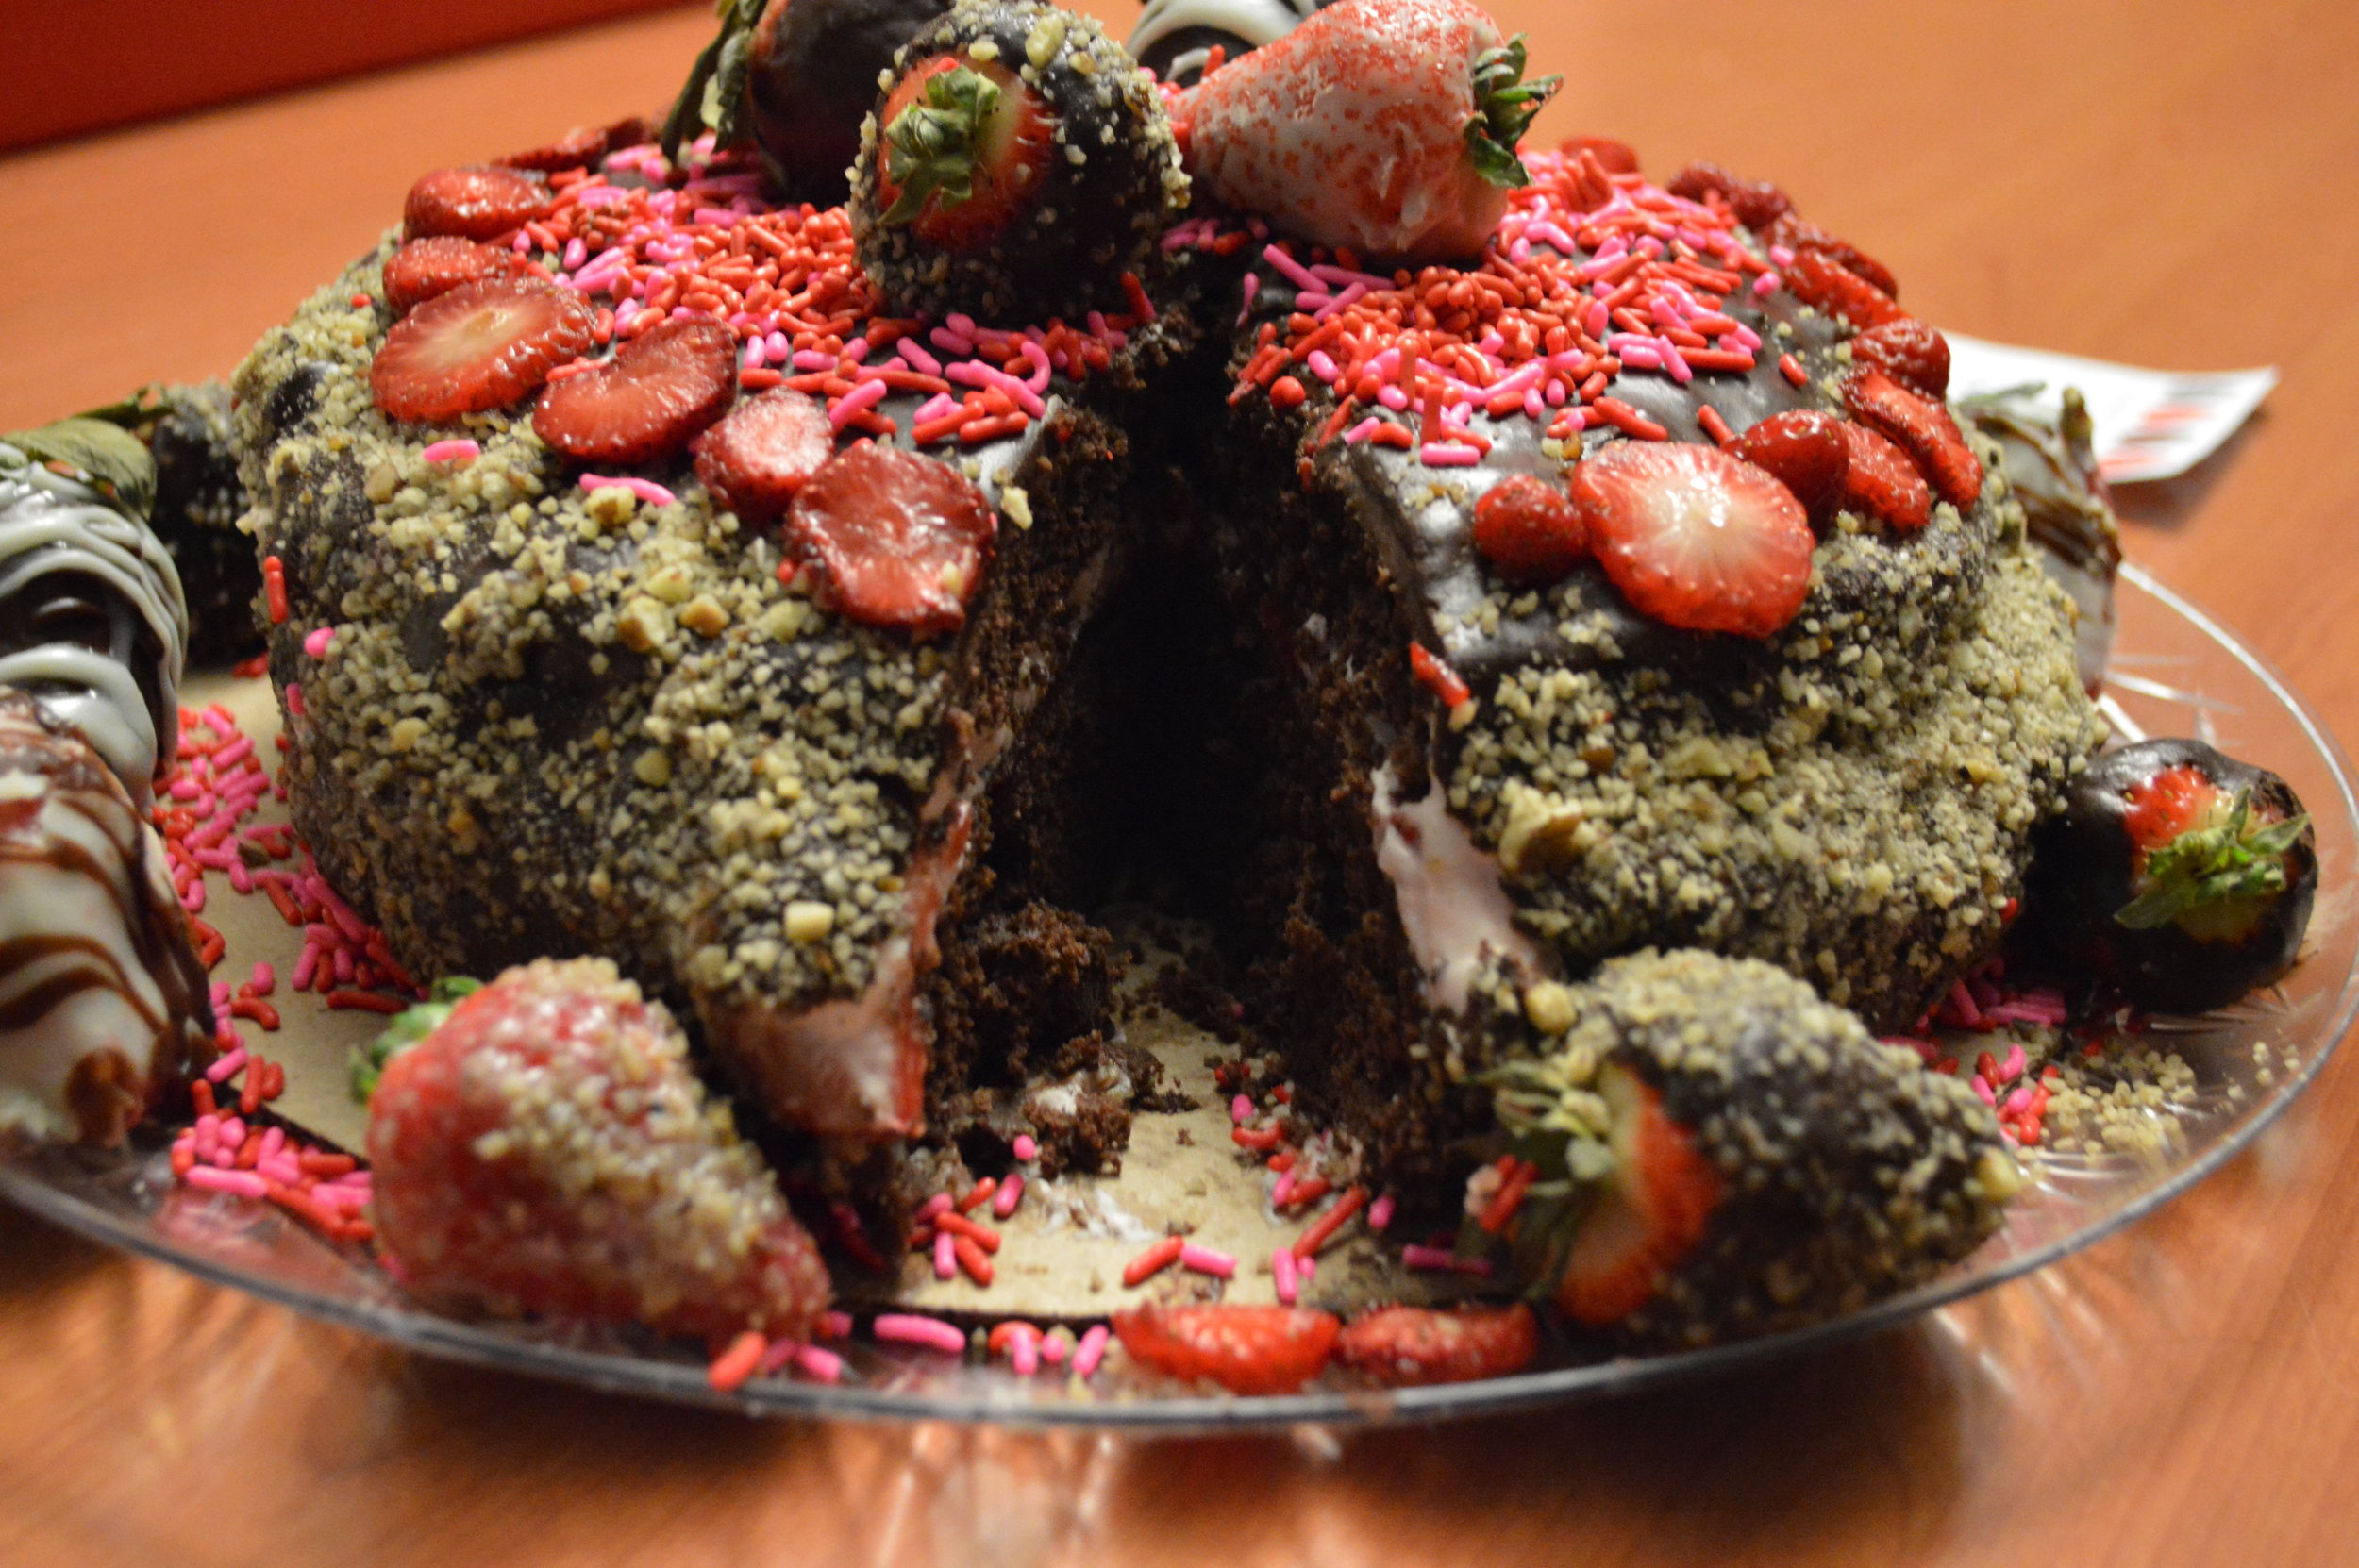 ¬	Kathleen Garland, Bidwell Training Center (Chocolate Strawberry Dream with Chocolate Ganache)